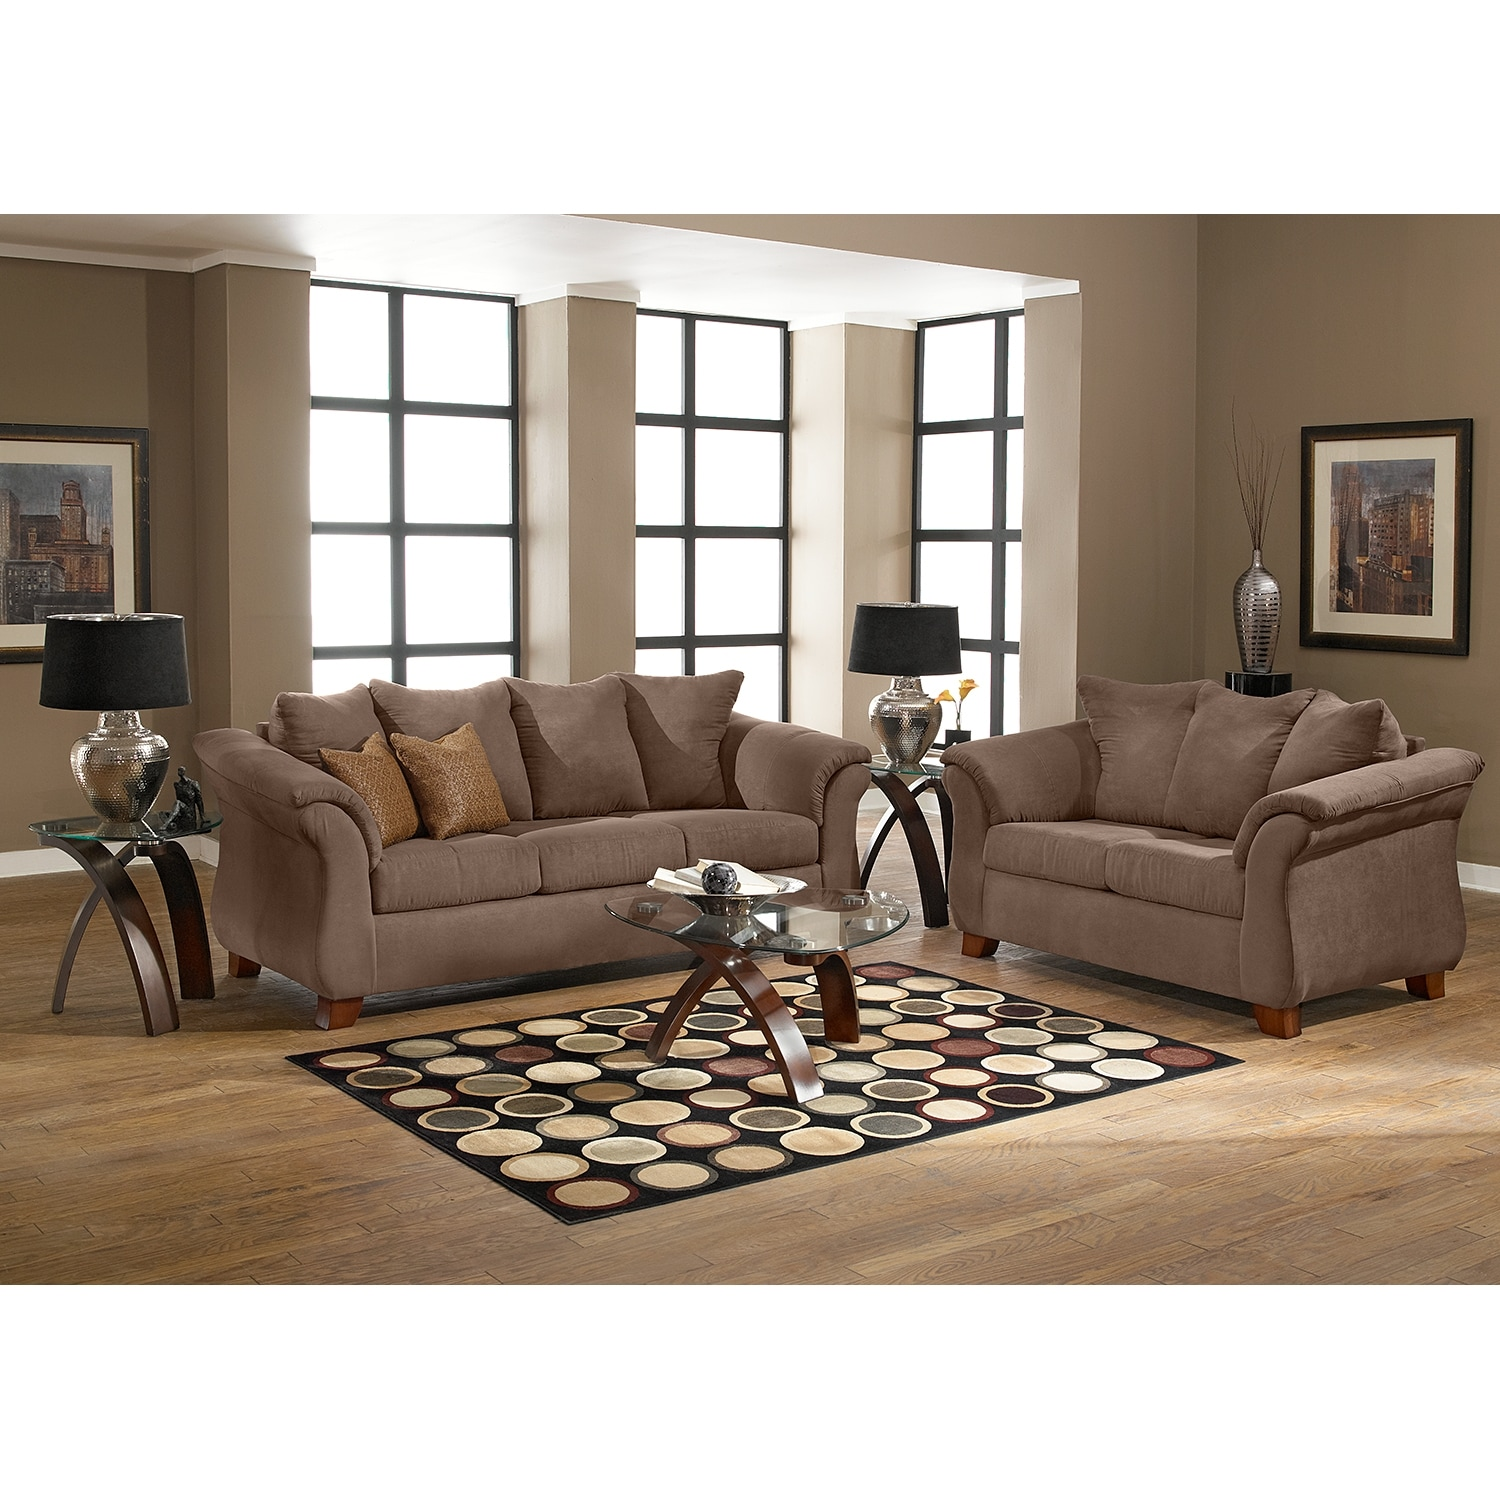 Acme Bedroom Furniture Adrian Sofa Taupe Value City Furniture